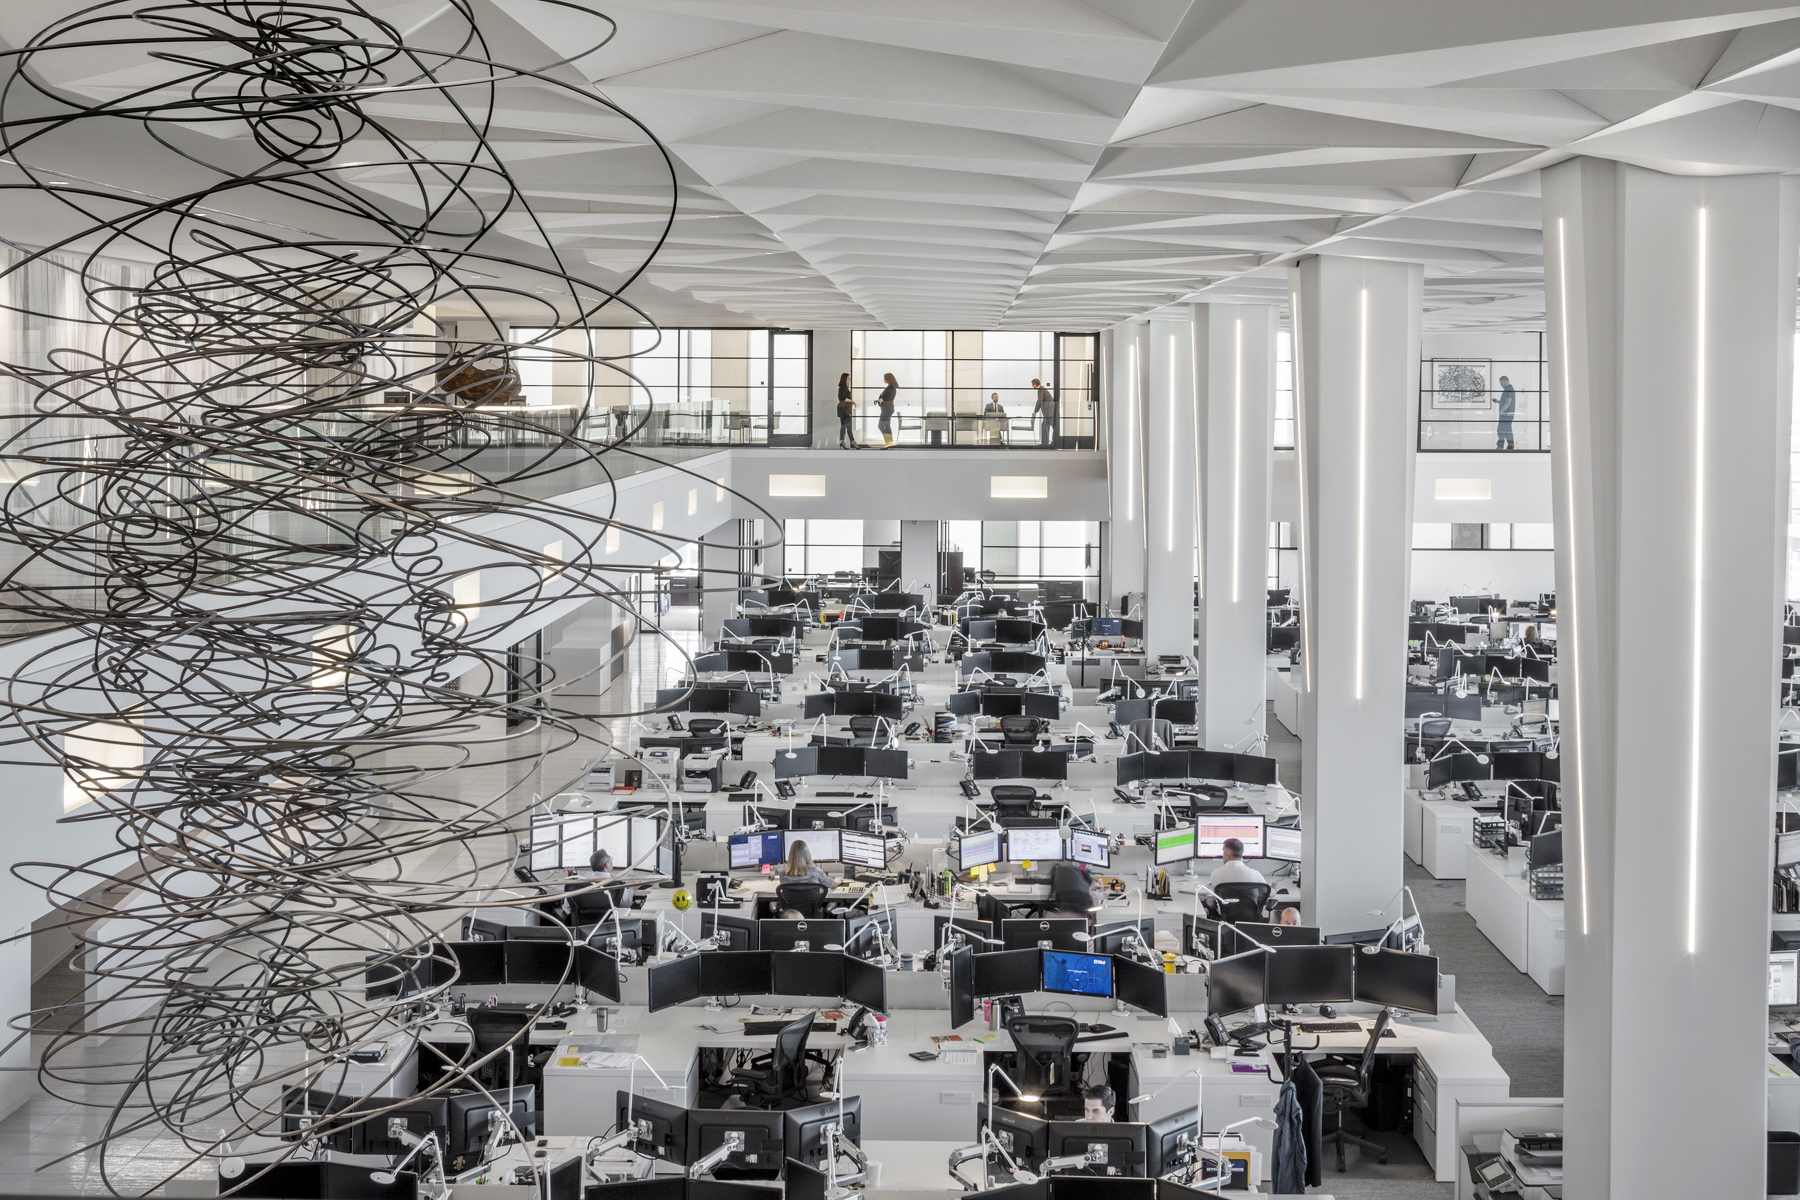 """""""A bustling trading floor infused with art and daylight exudes a sophisticated energy"""" - Architectural record"""